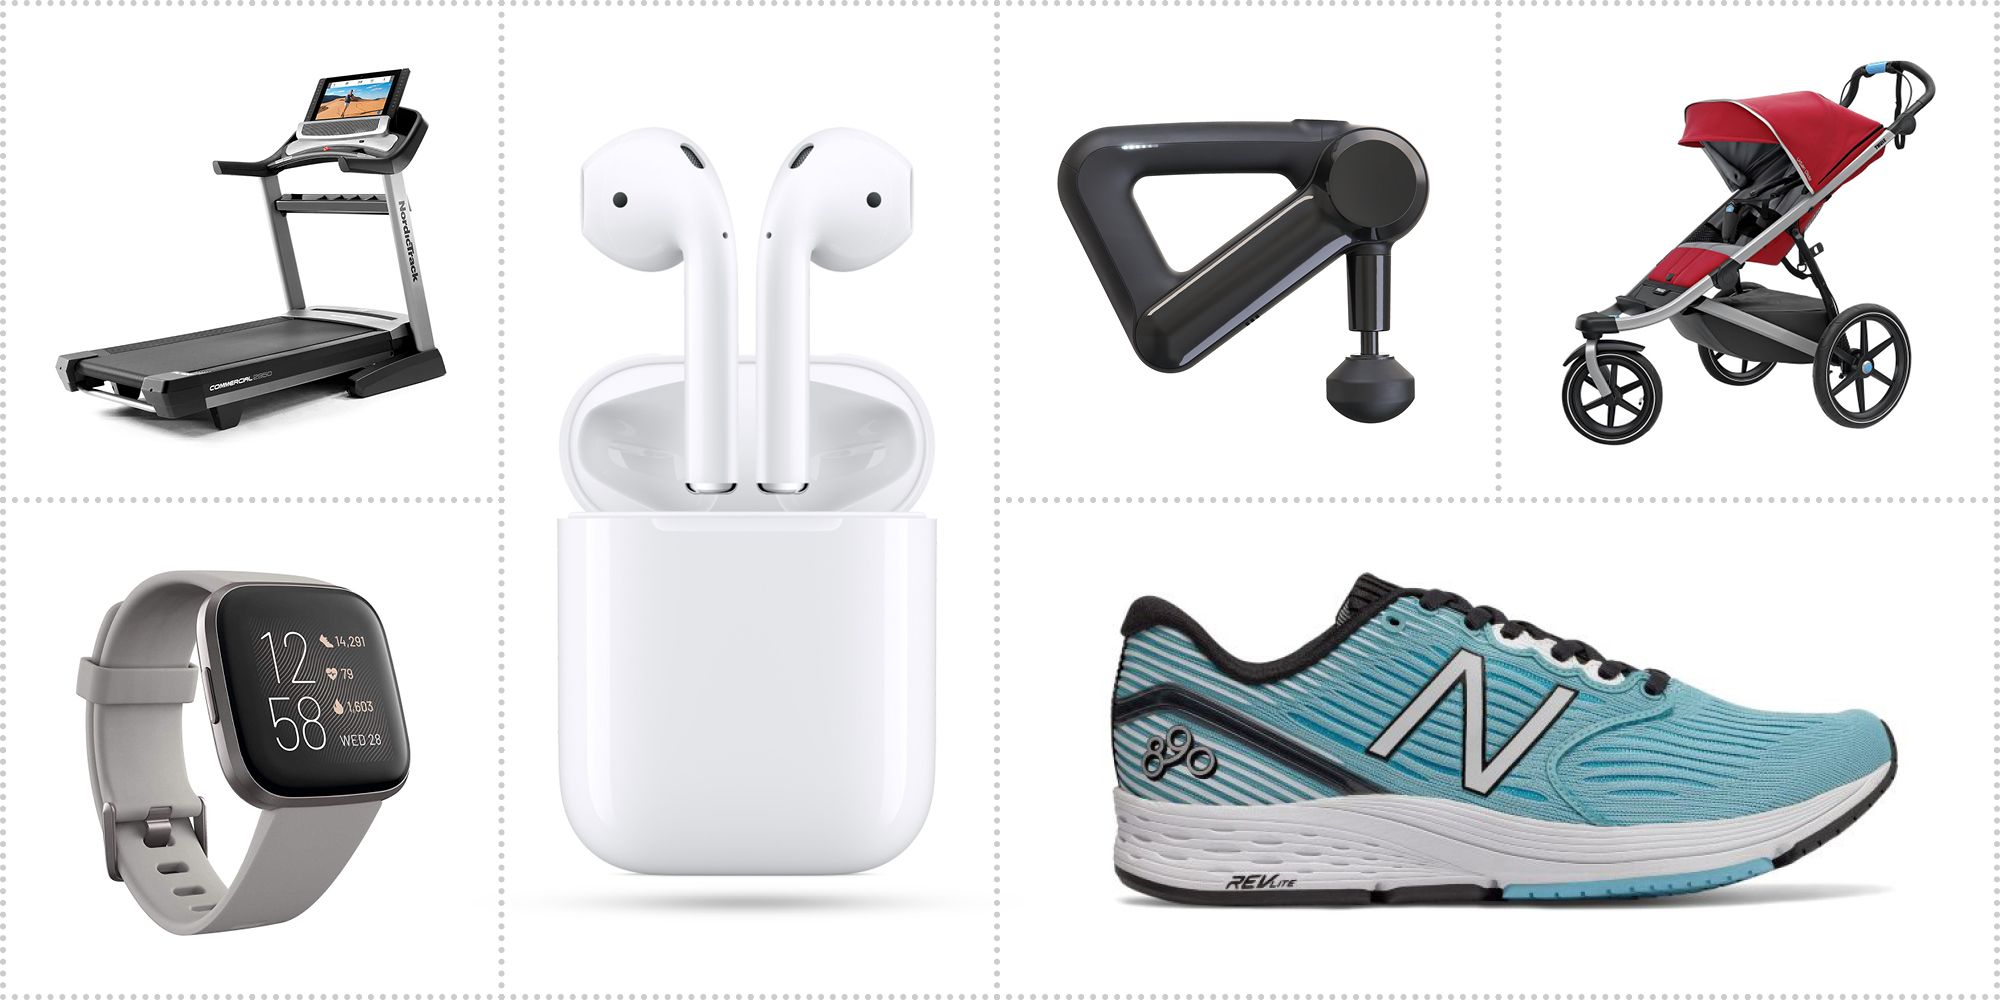 Best Cyber Monday Deals For Runners Cyber Monday 2019